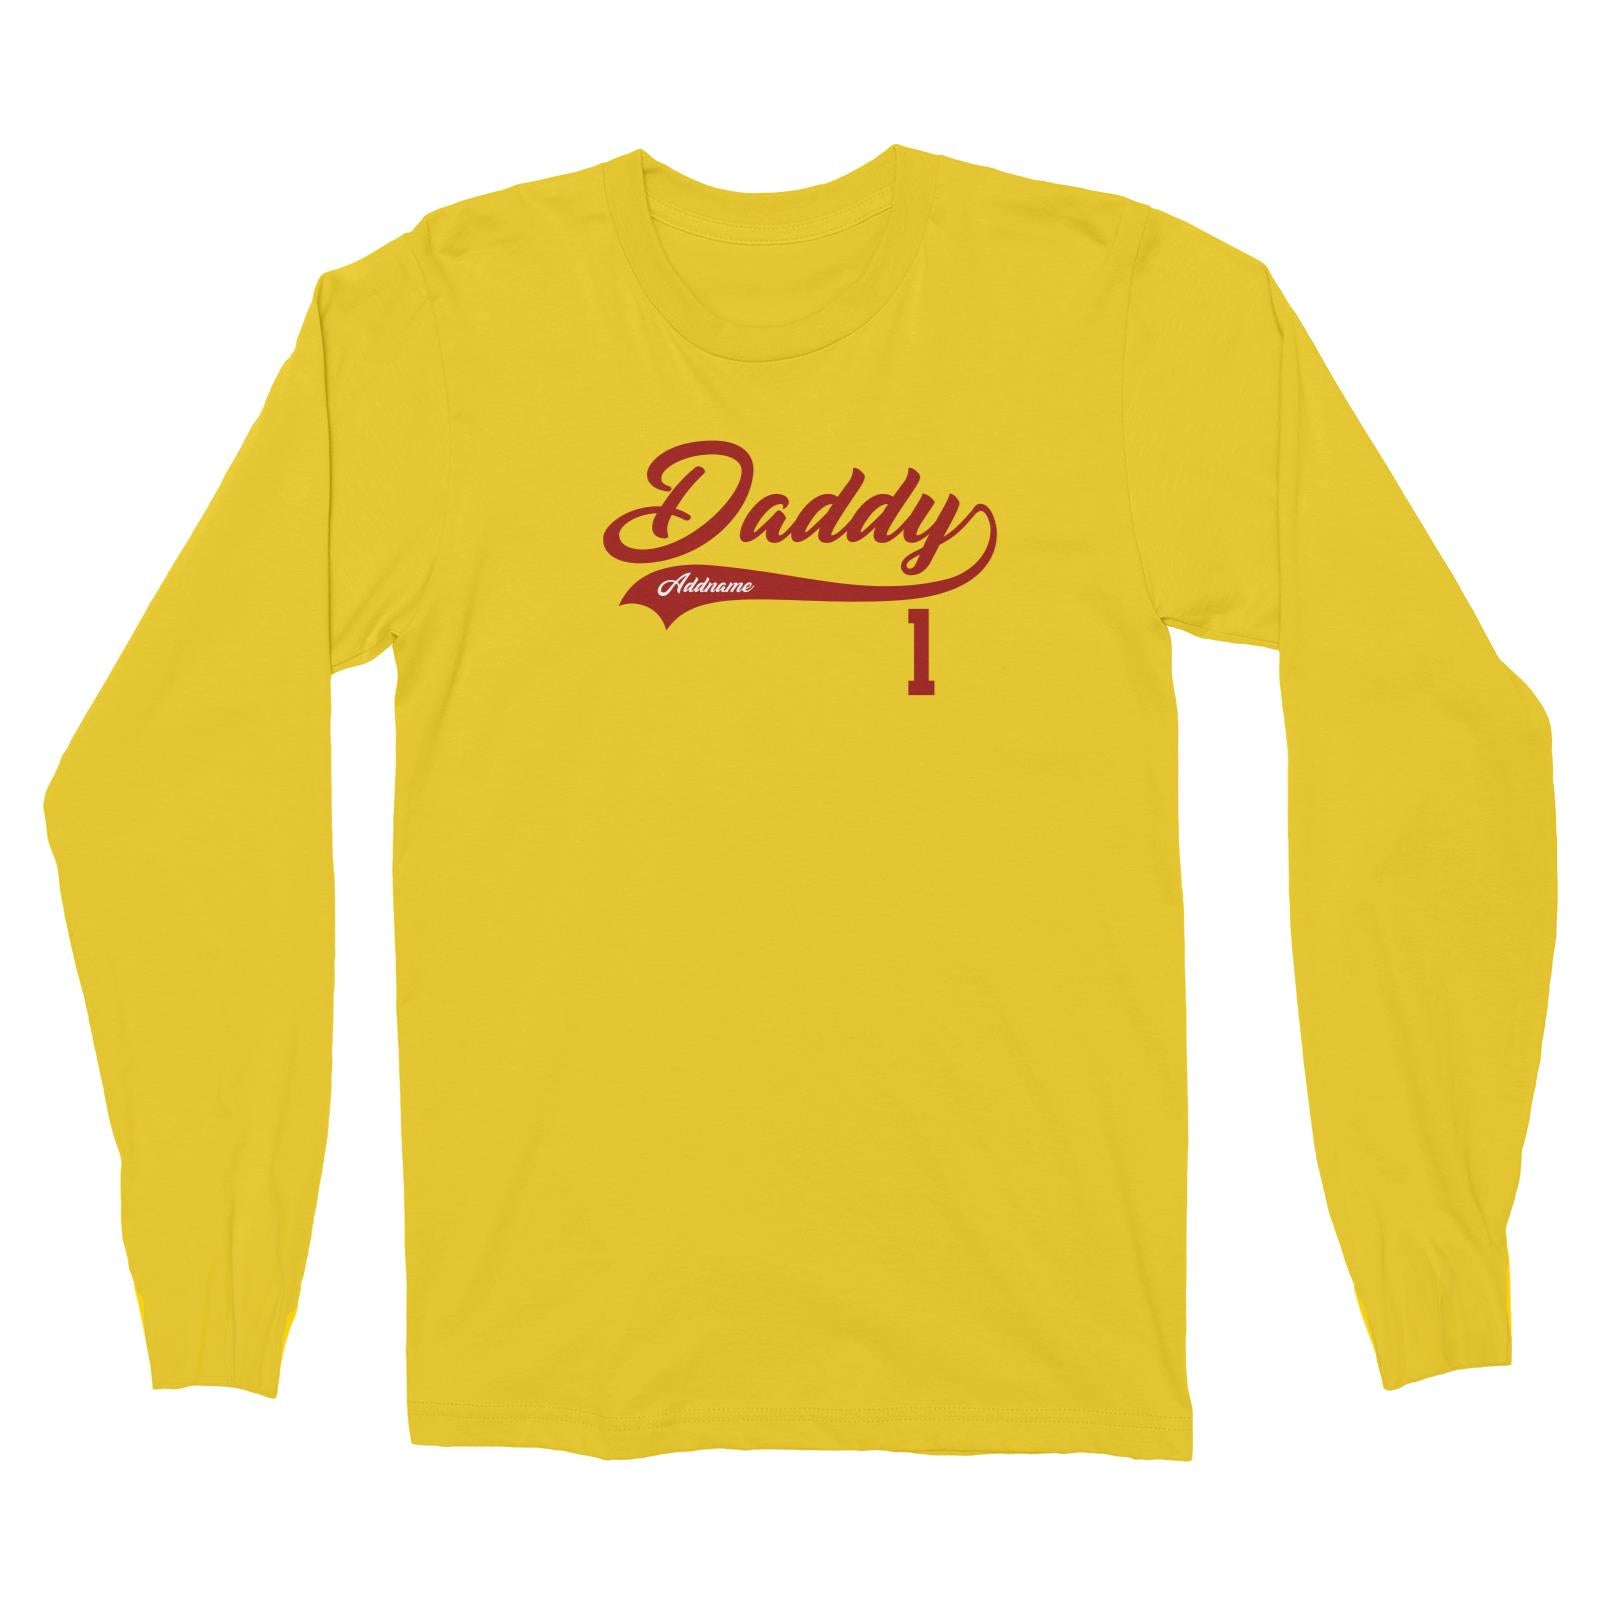 Daddy Retro No 1 Baseball Team Long Sleeve Unisex T-Shirt